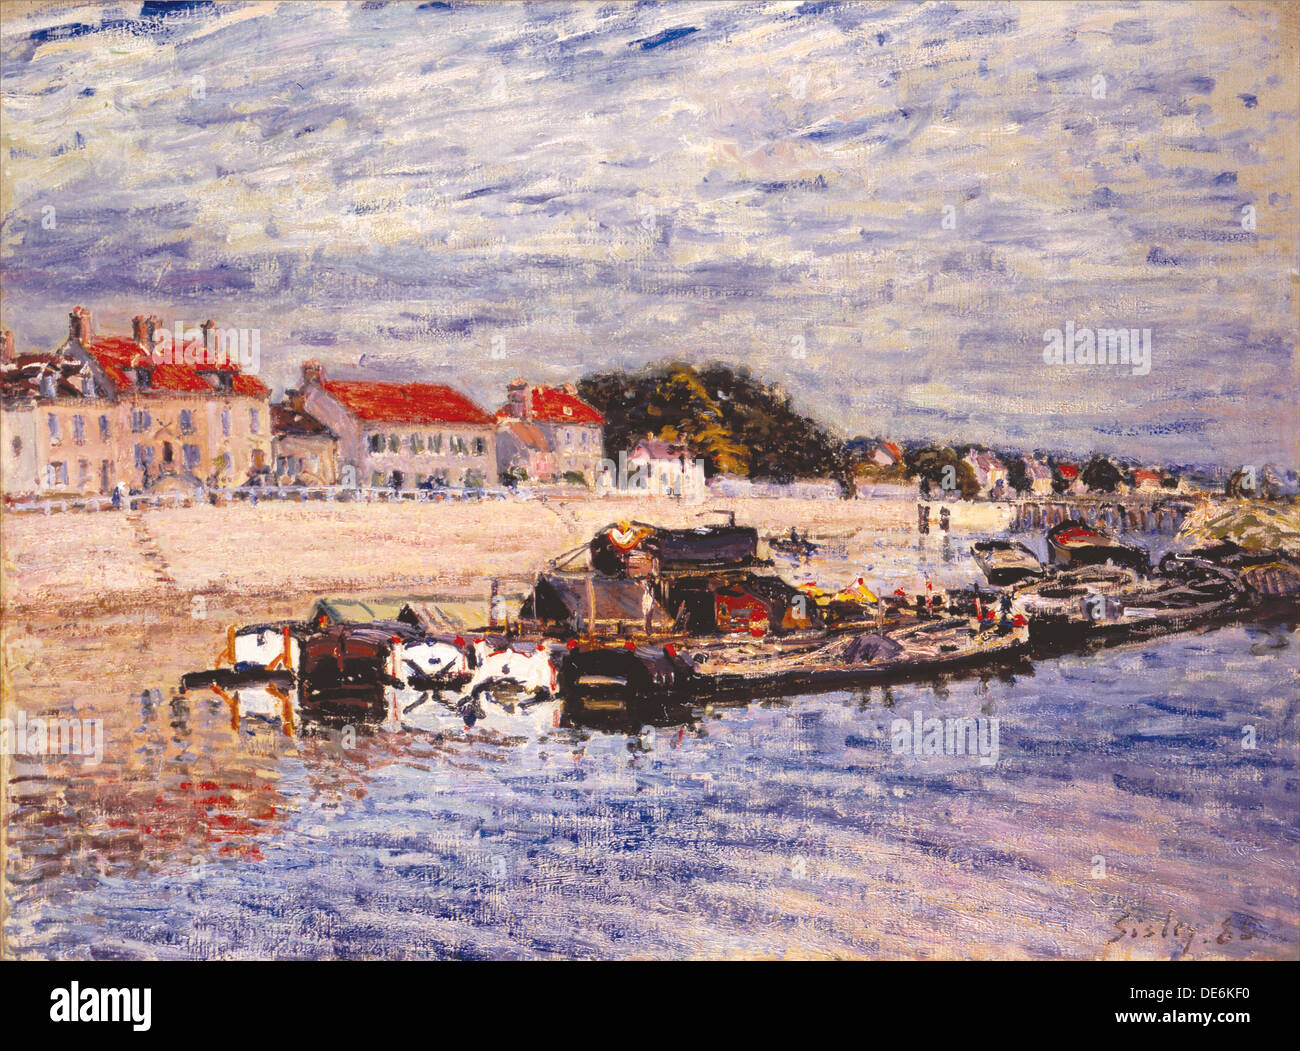 Barges on the Loing at Saint-Mammès, 1885. Artist: Sisley, Alfred (1839-1899) - Stock Image